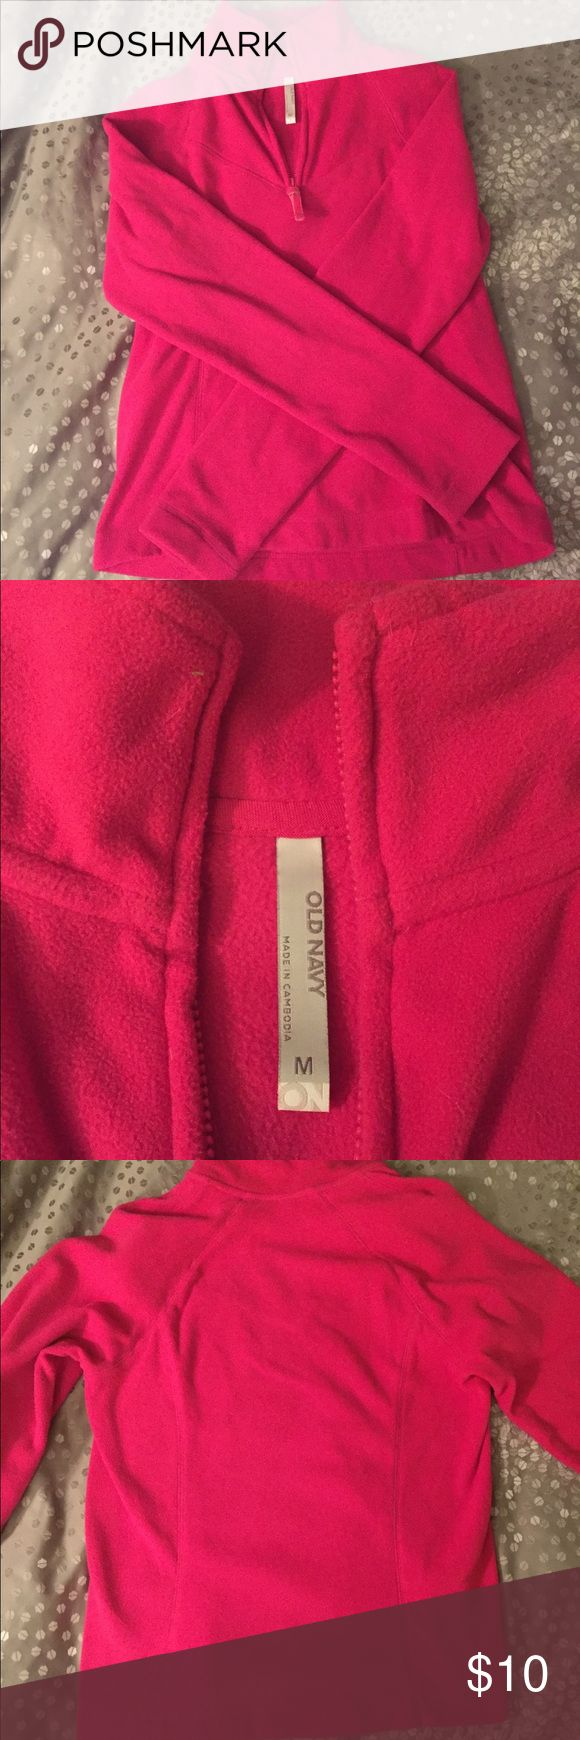 Pink Old navy fleece Sz M Pink old navy fleece jacket- size medium. Only worn a couple times. Very soft and warm! Old Navy Tops Sweatshirts & Hoodies